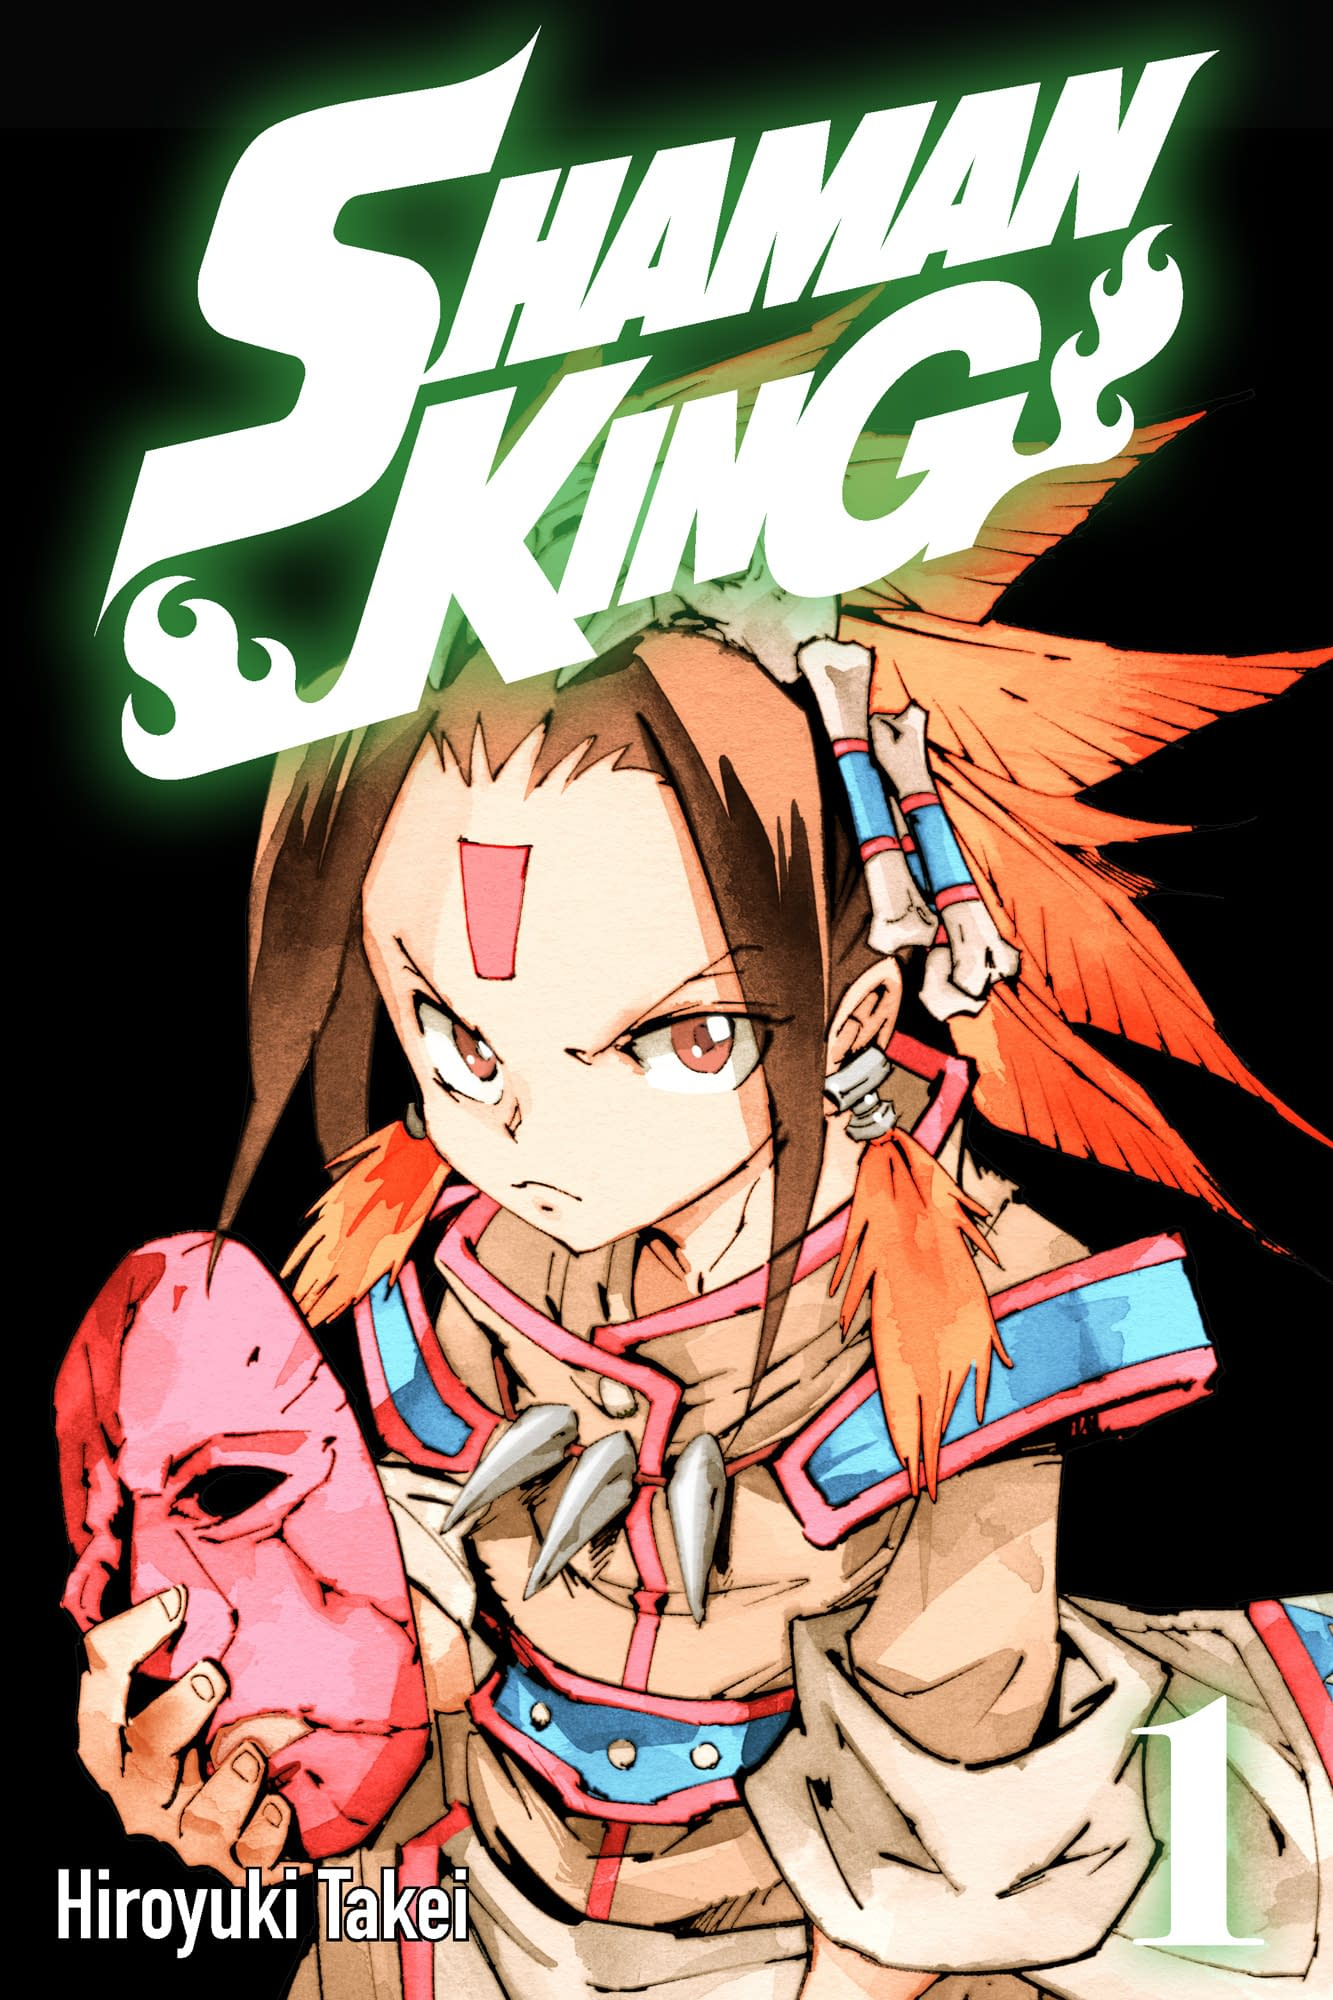 Shaman King Manga Will Be Completed in English for the First Time